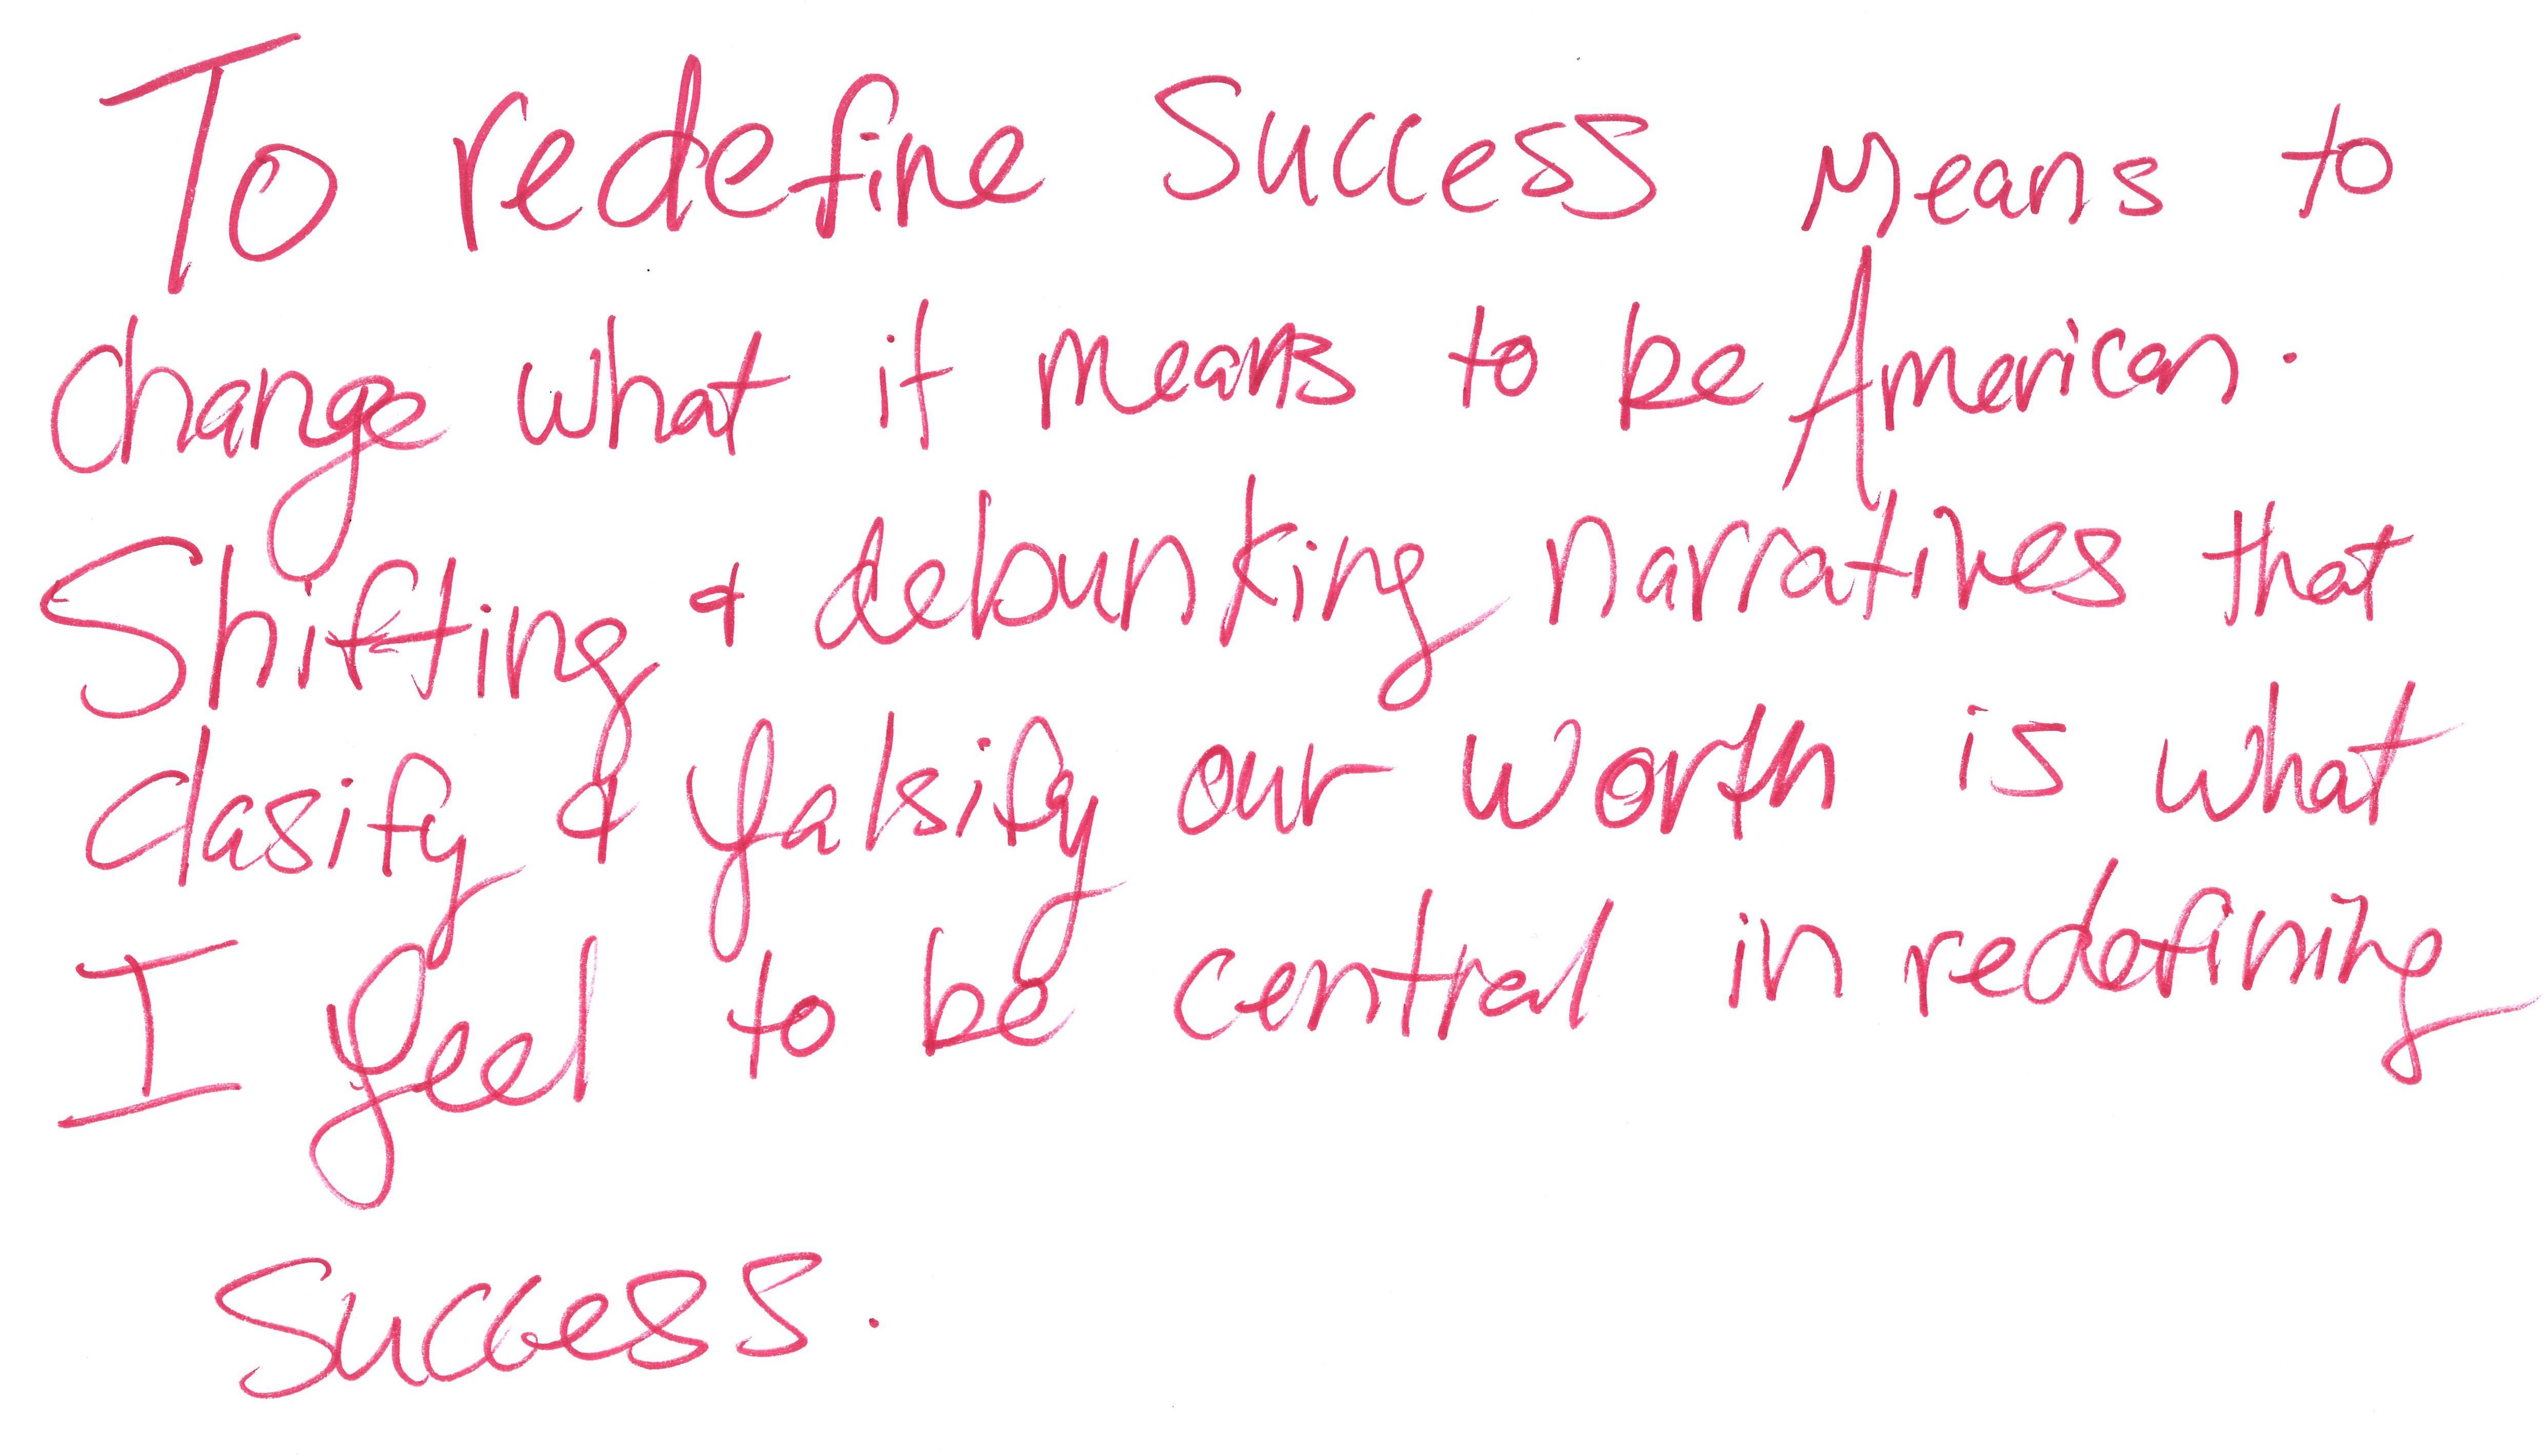 """Six lines of handwritten text in red marker read """"To redefine success means to change what it means to be American. Shifting & debunking narratives that clasify & falsify our worth is what I feel to be central in redefining success."""""""